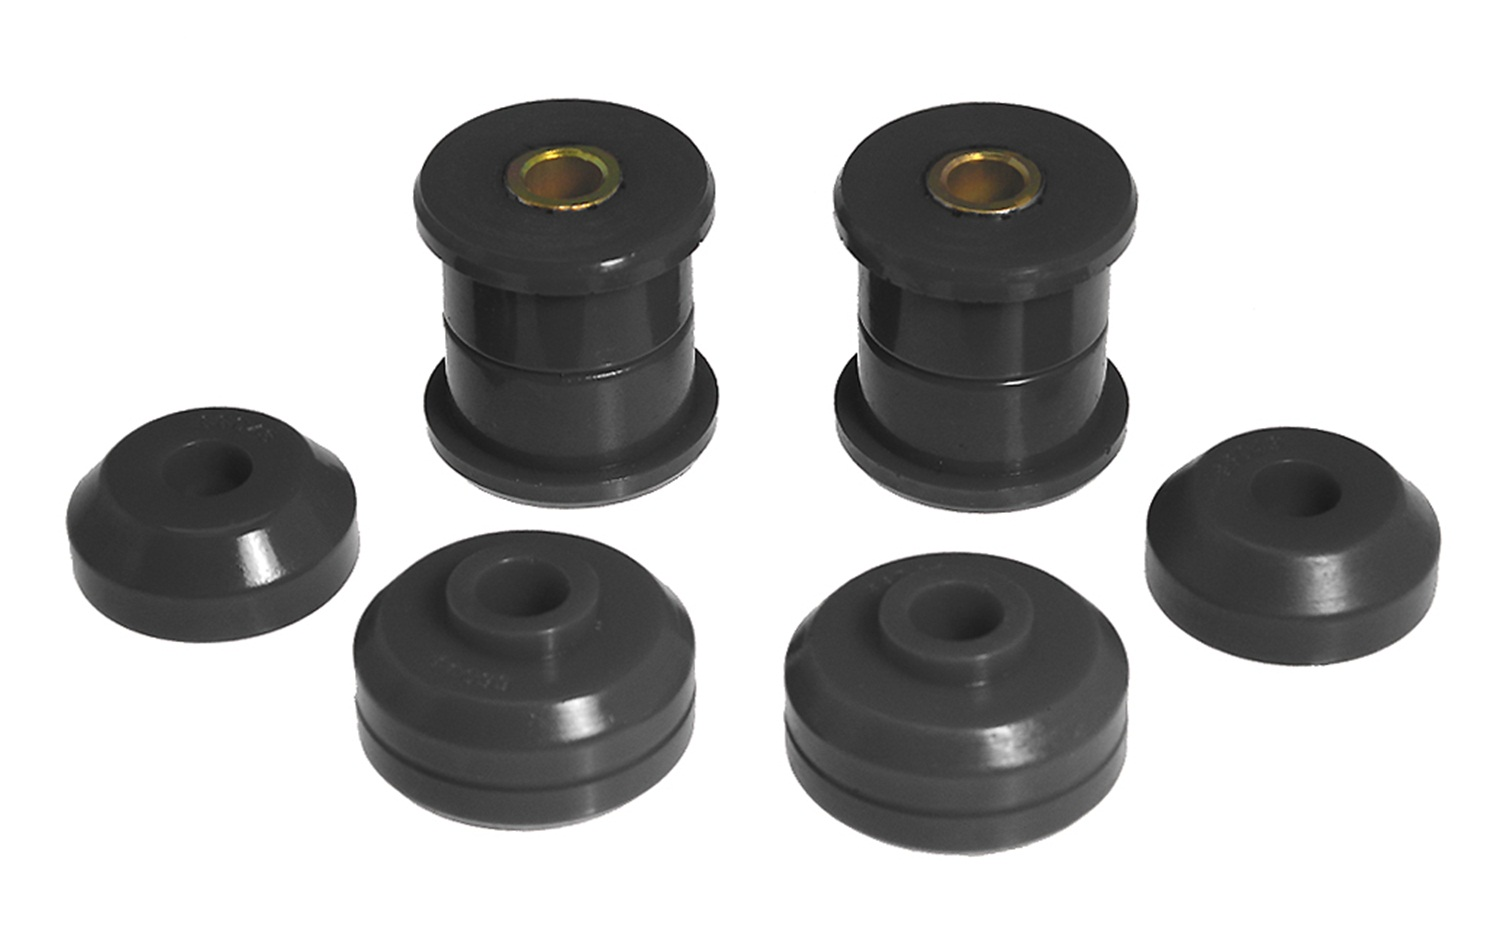 Prothane 13-901-BL Shock Mount Bushing Kit Fits 95-99 Eclipse Talon